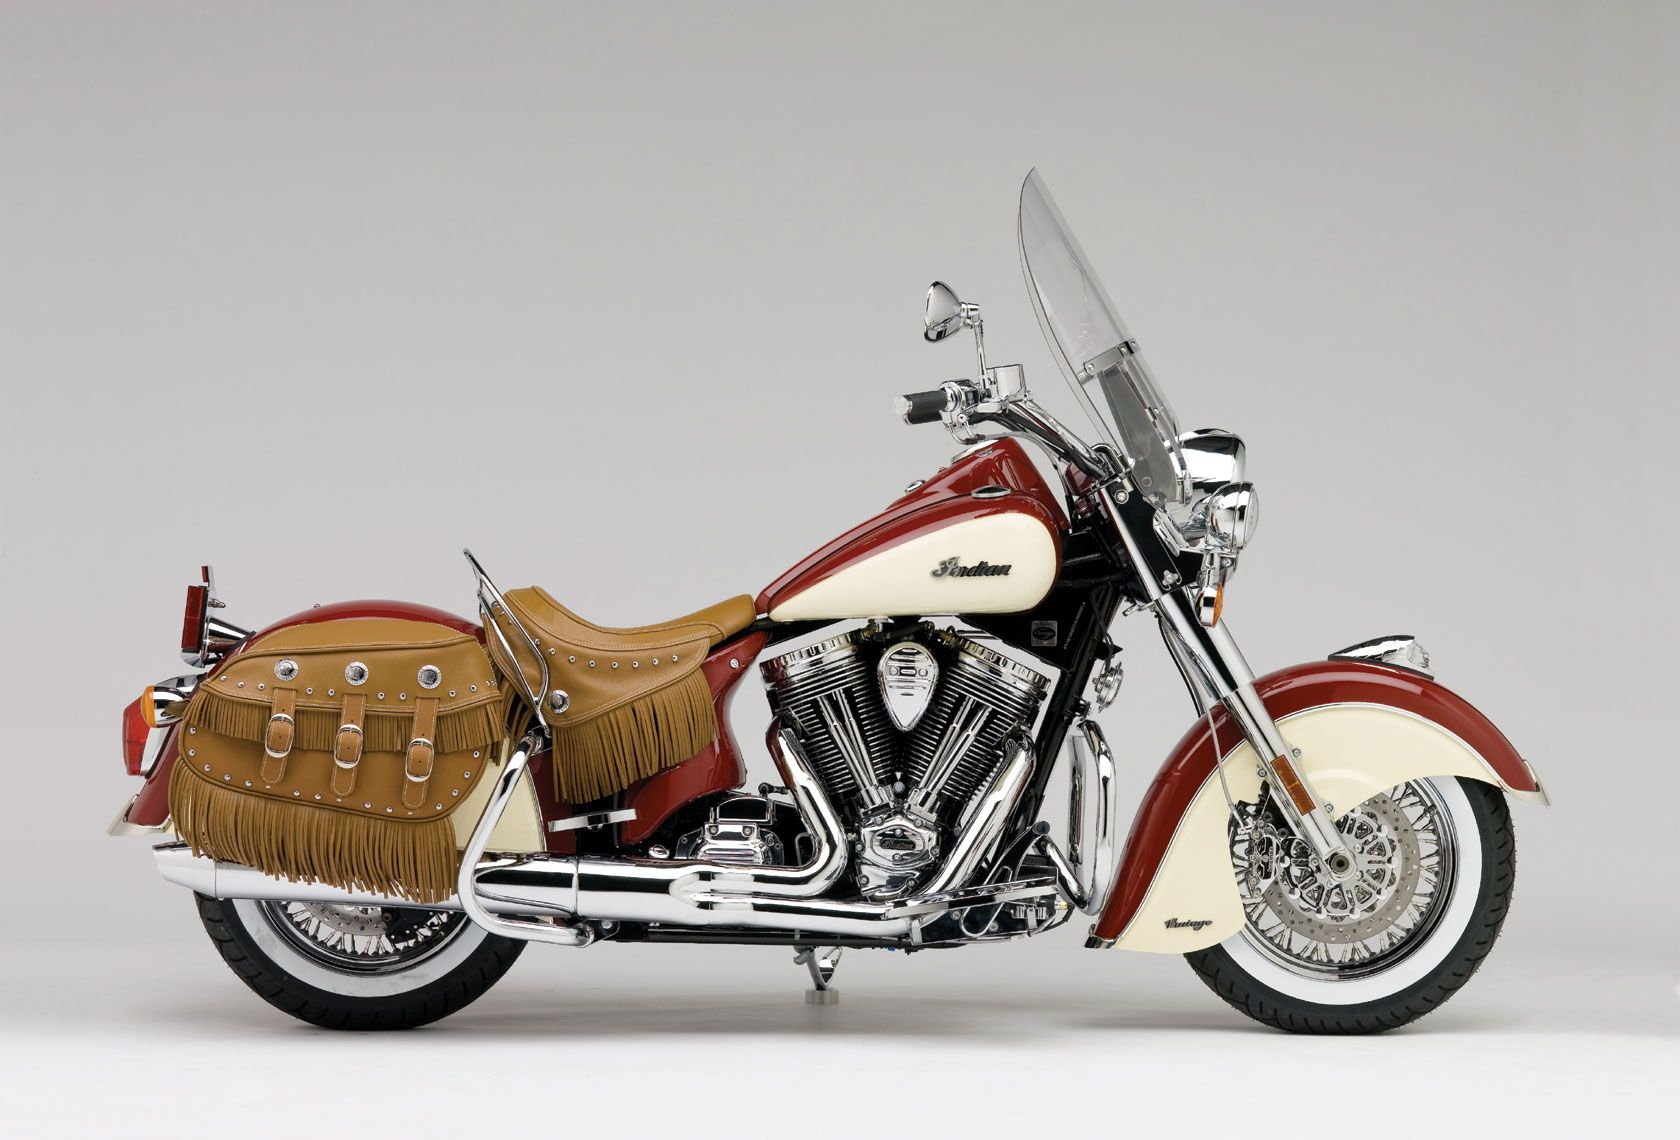 2012 Indian Motorcycles | ... Indian motorcycle engine new PowerPlus 1720 cubic centimeters